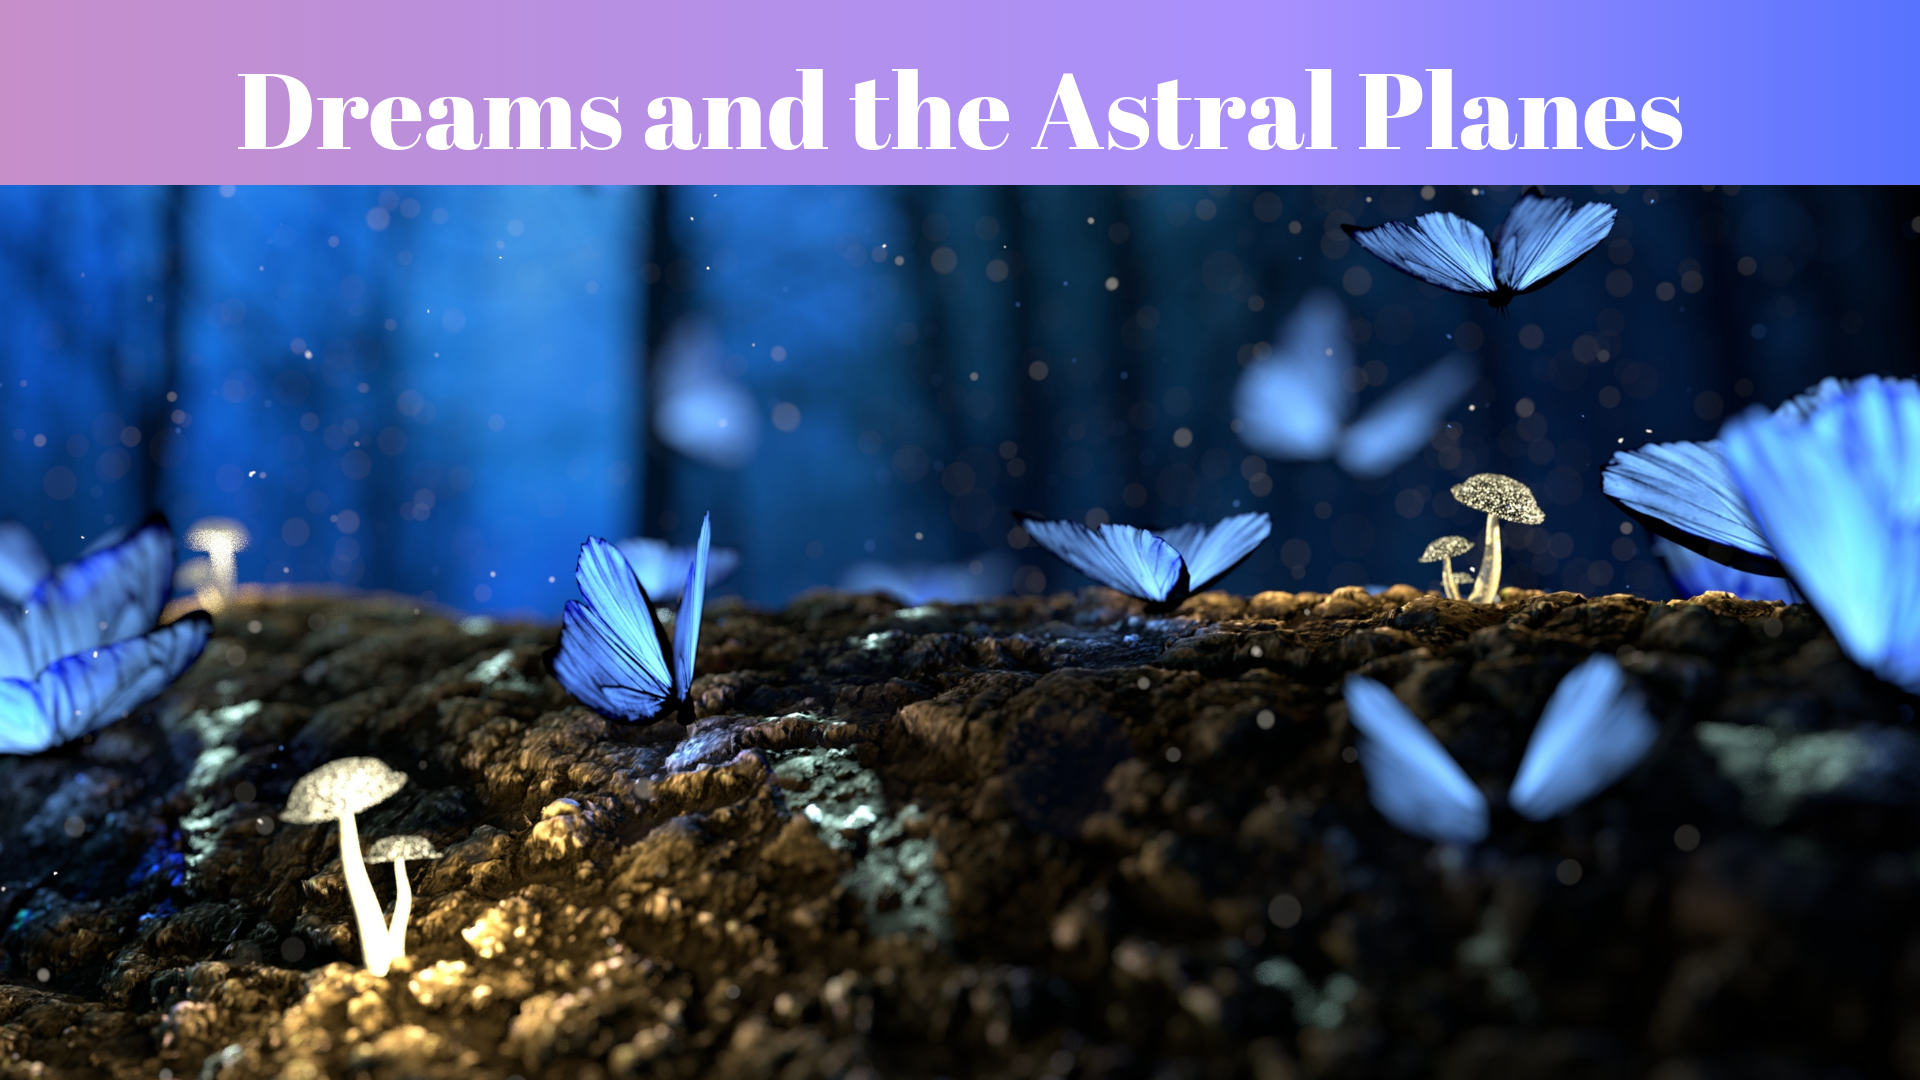 Dreams and the Astral Planes